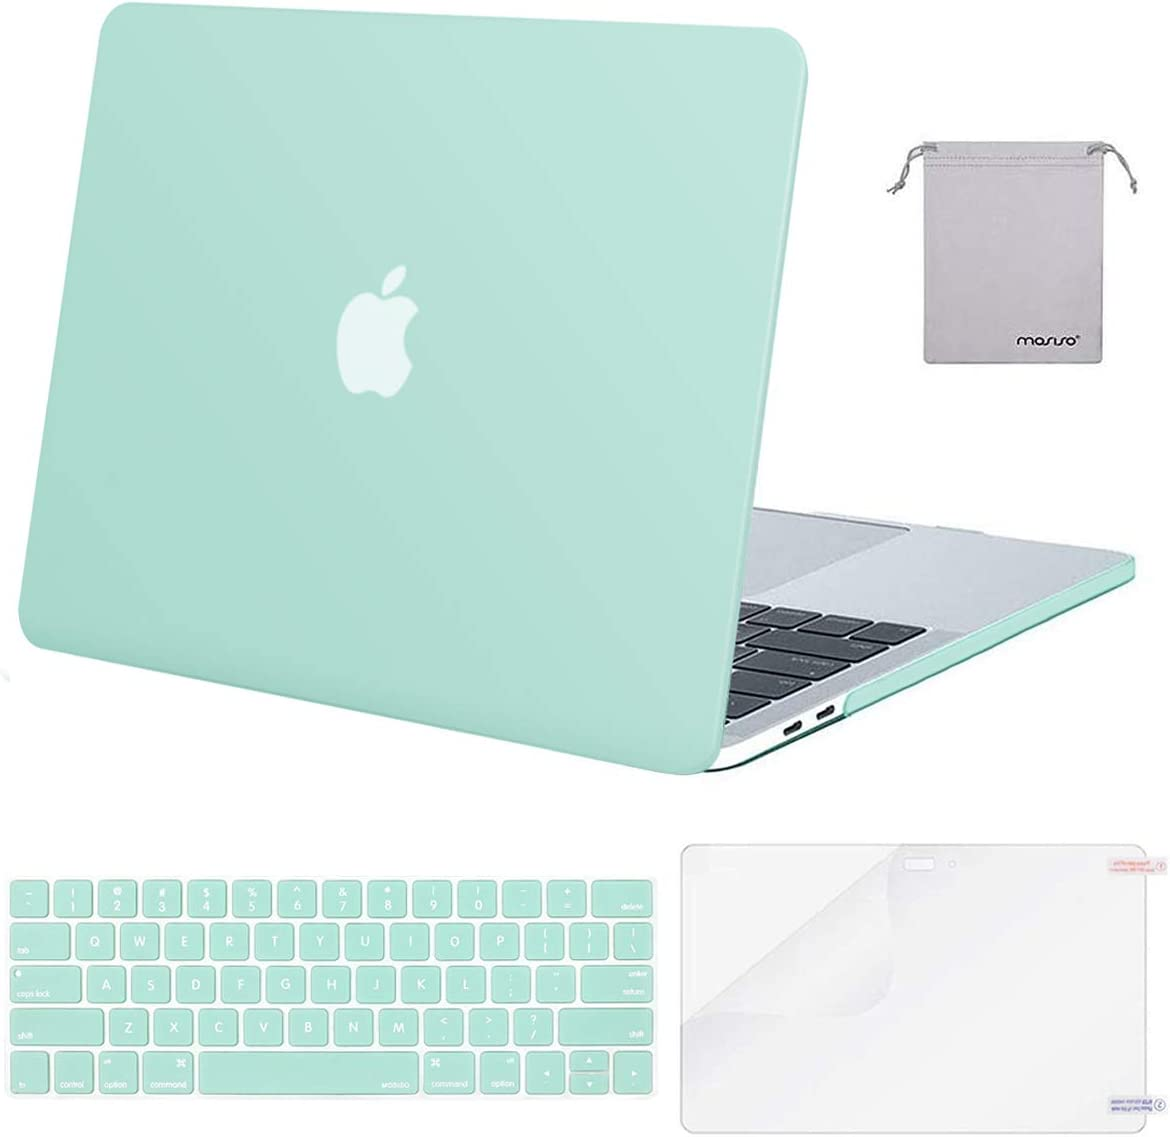 MOSISO MacBook Pro 15 inch Case 2019 2018 2017 2016 Release A1990 A1707, Plastic Hard Shell Case&Keyboard Cover&Screen Protector&Storage Bag Compatible with MacBook Pro 15 Touch Bar, Mint Green